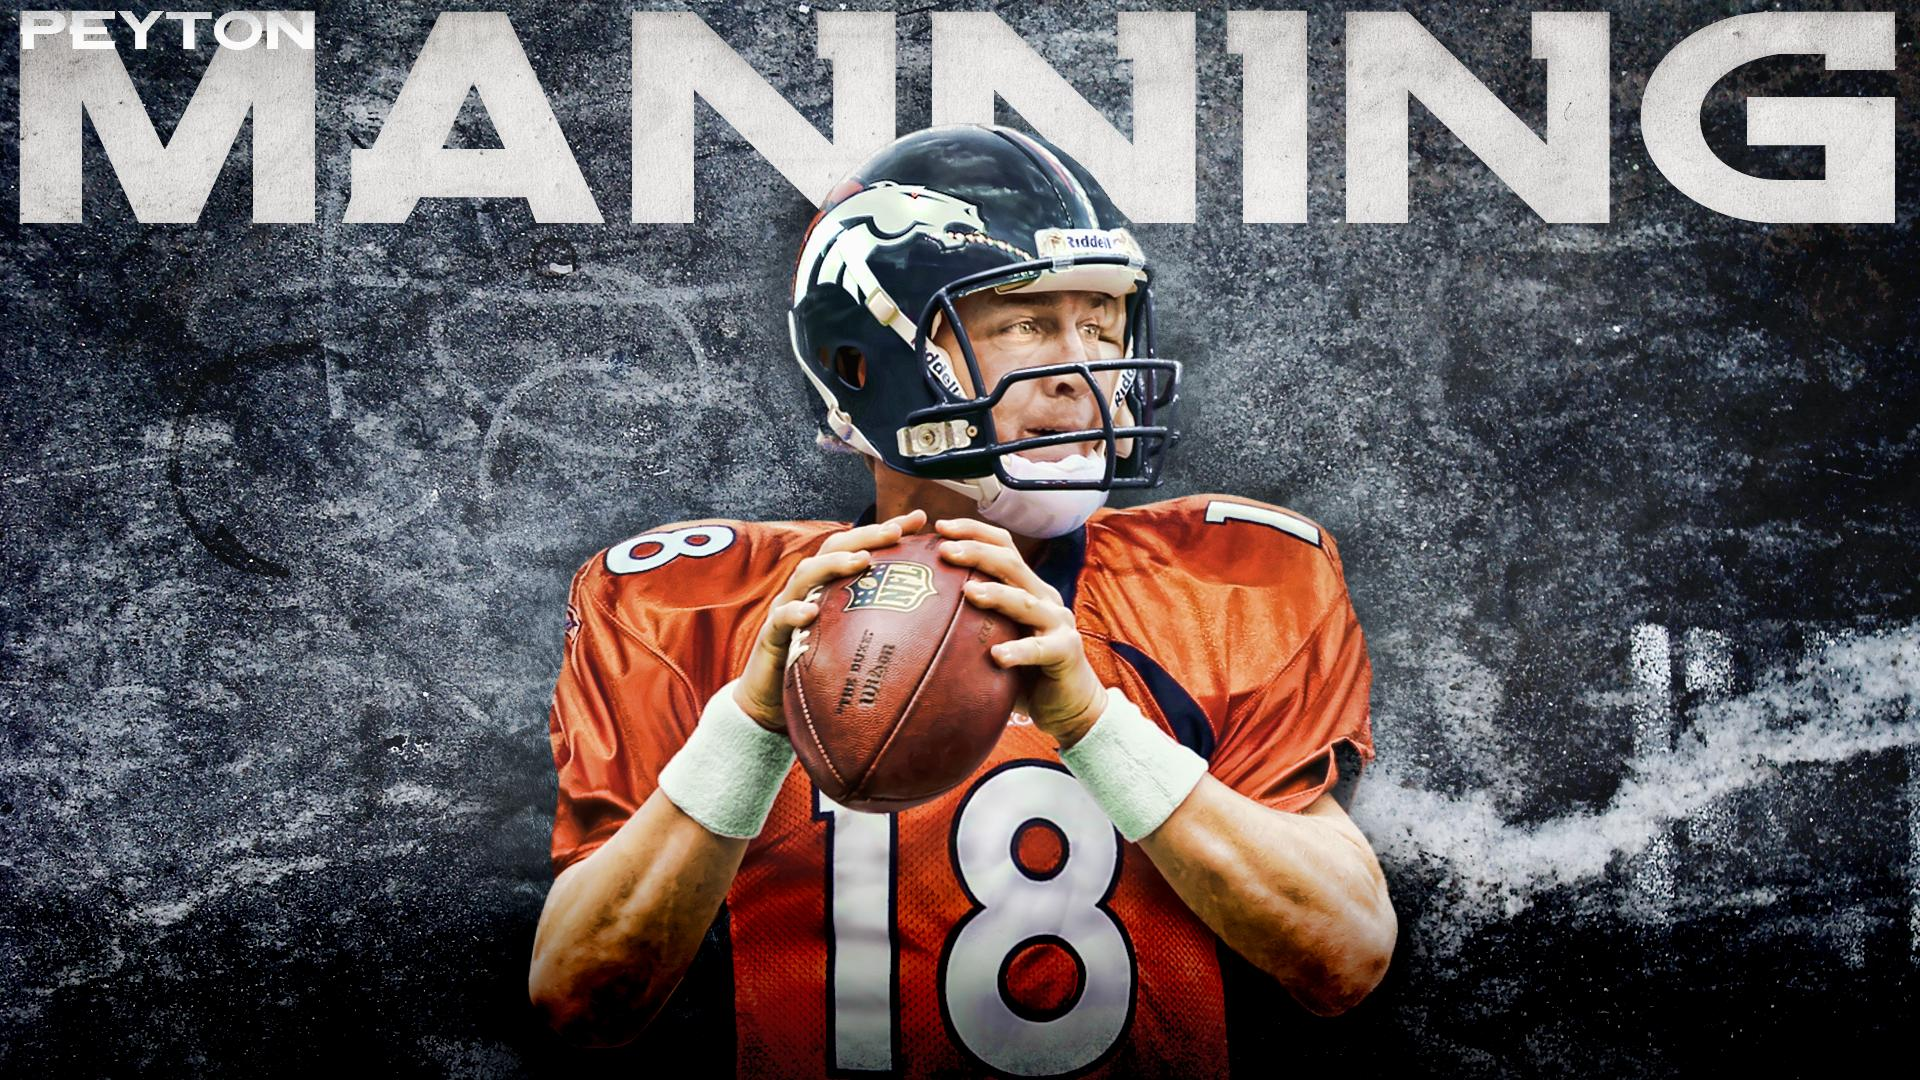 Peyton Manning Denver Broncos Nfl Football Wallpaper 1920x1080